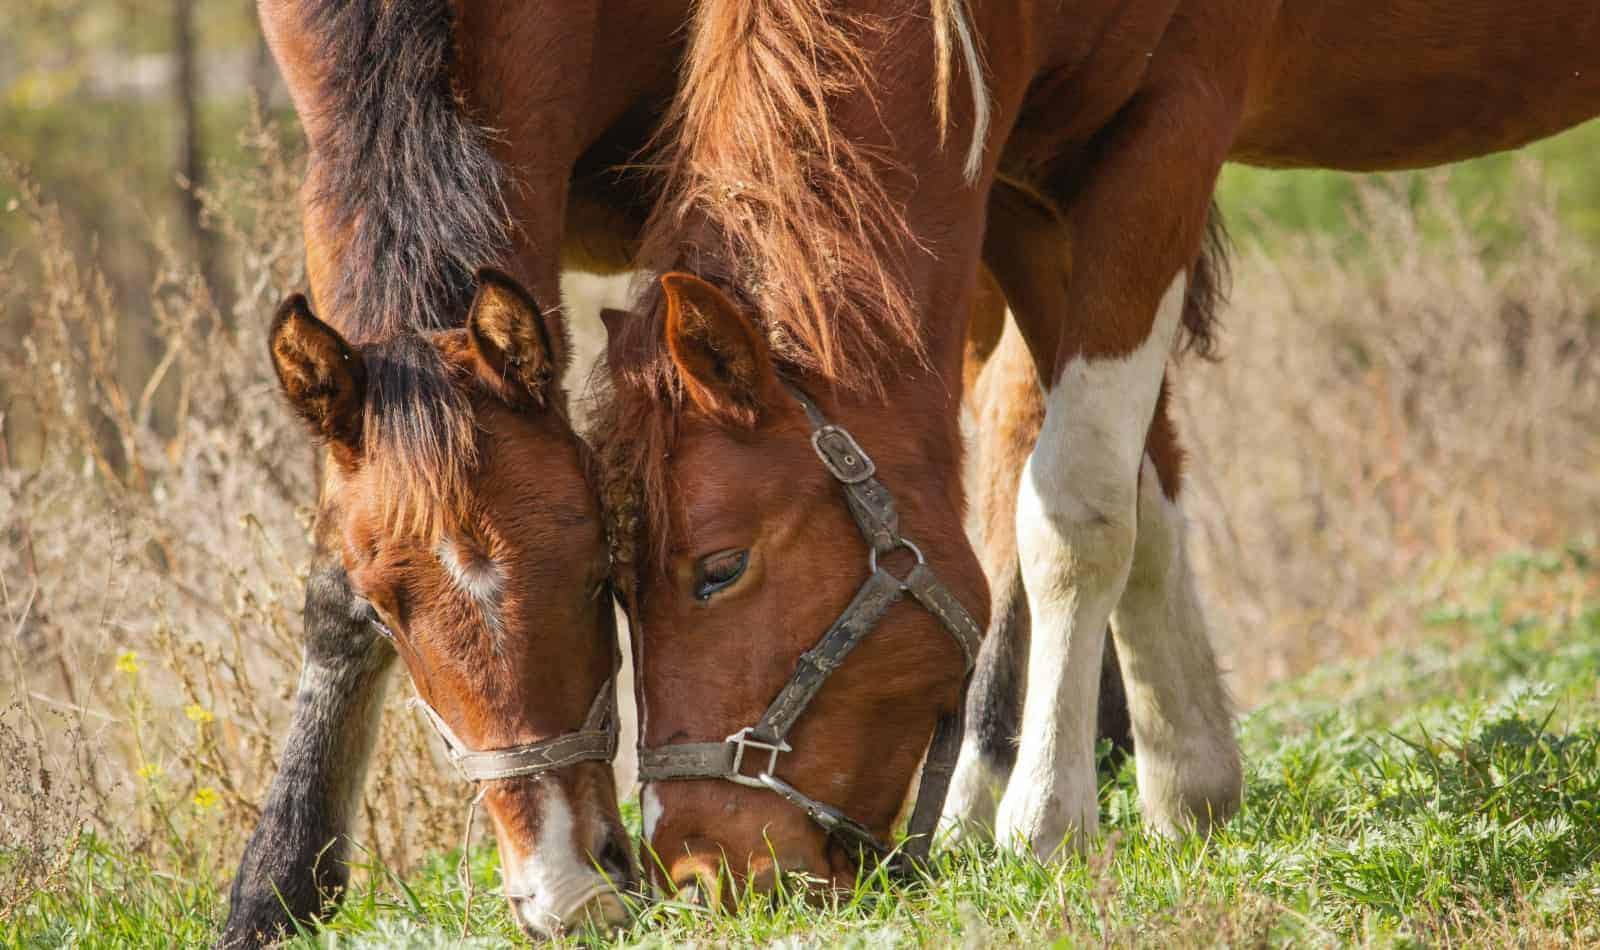 horses eating grass: can they also eat almonds?